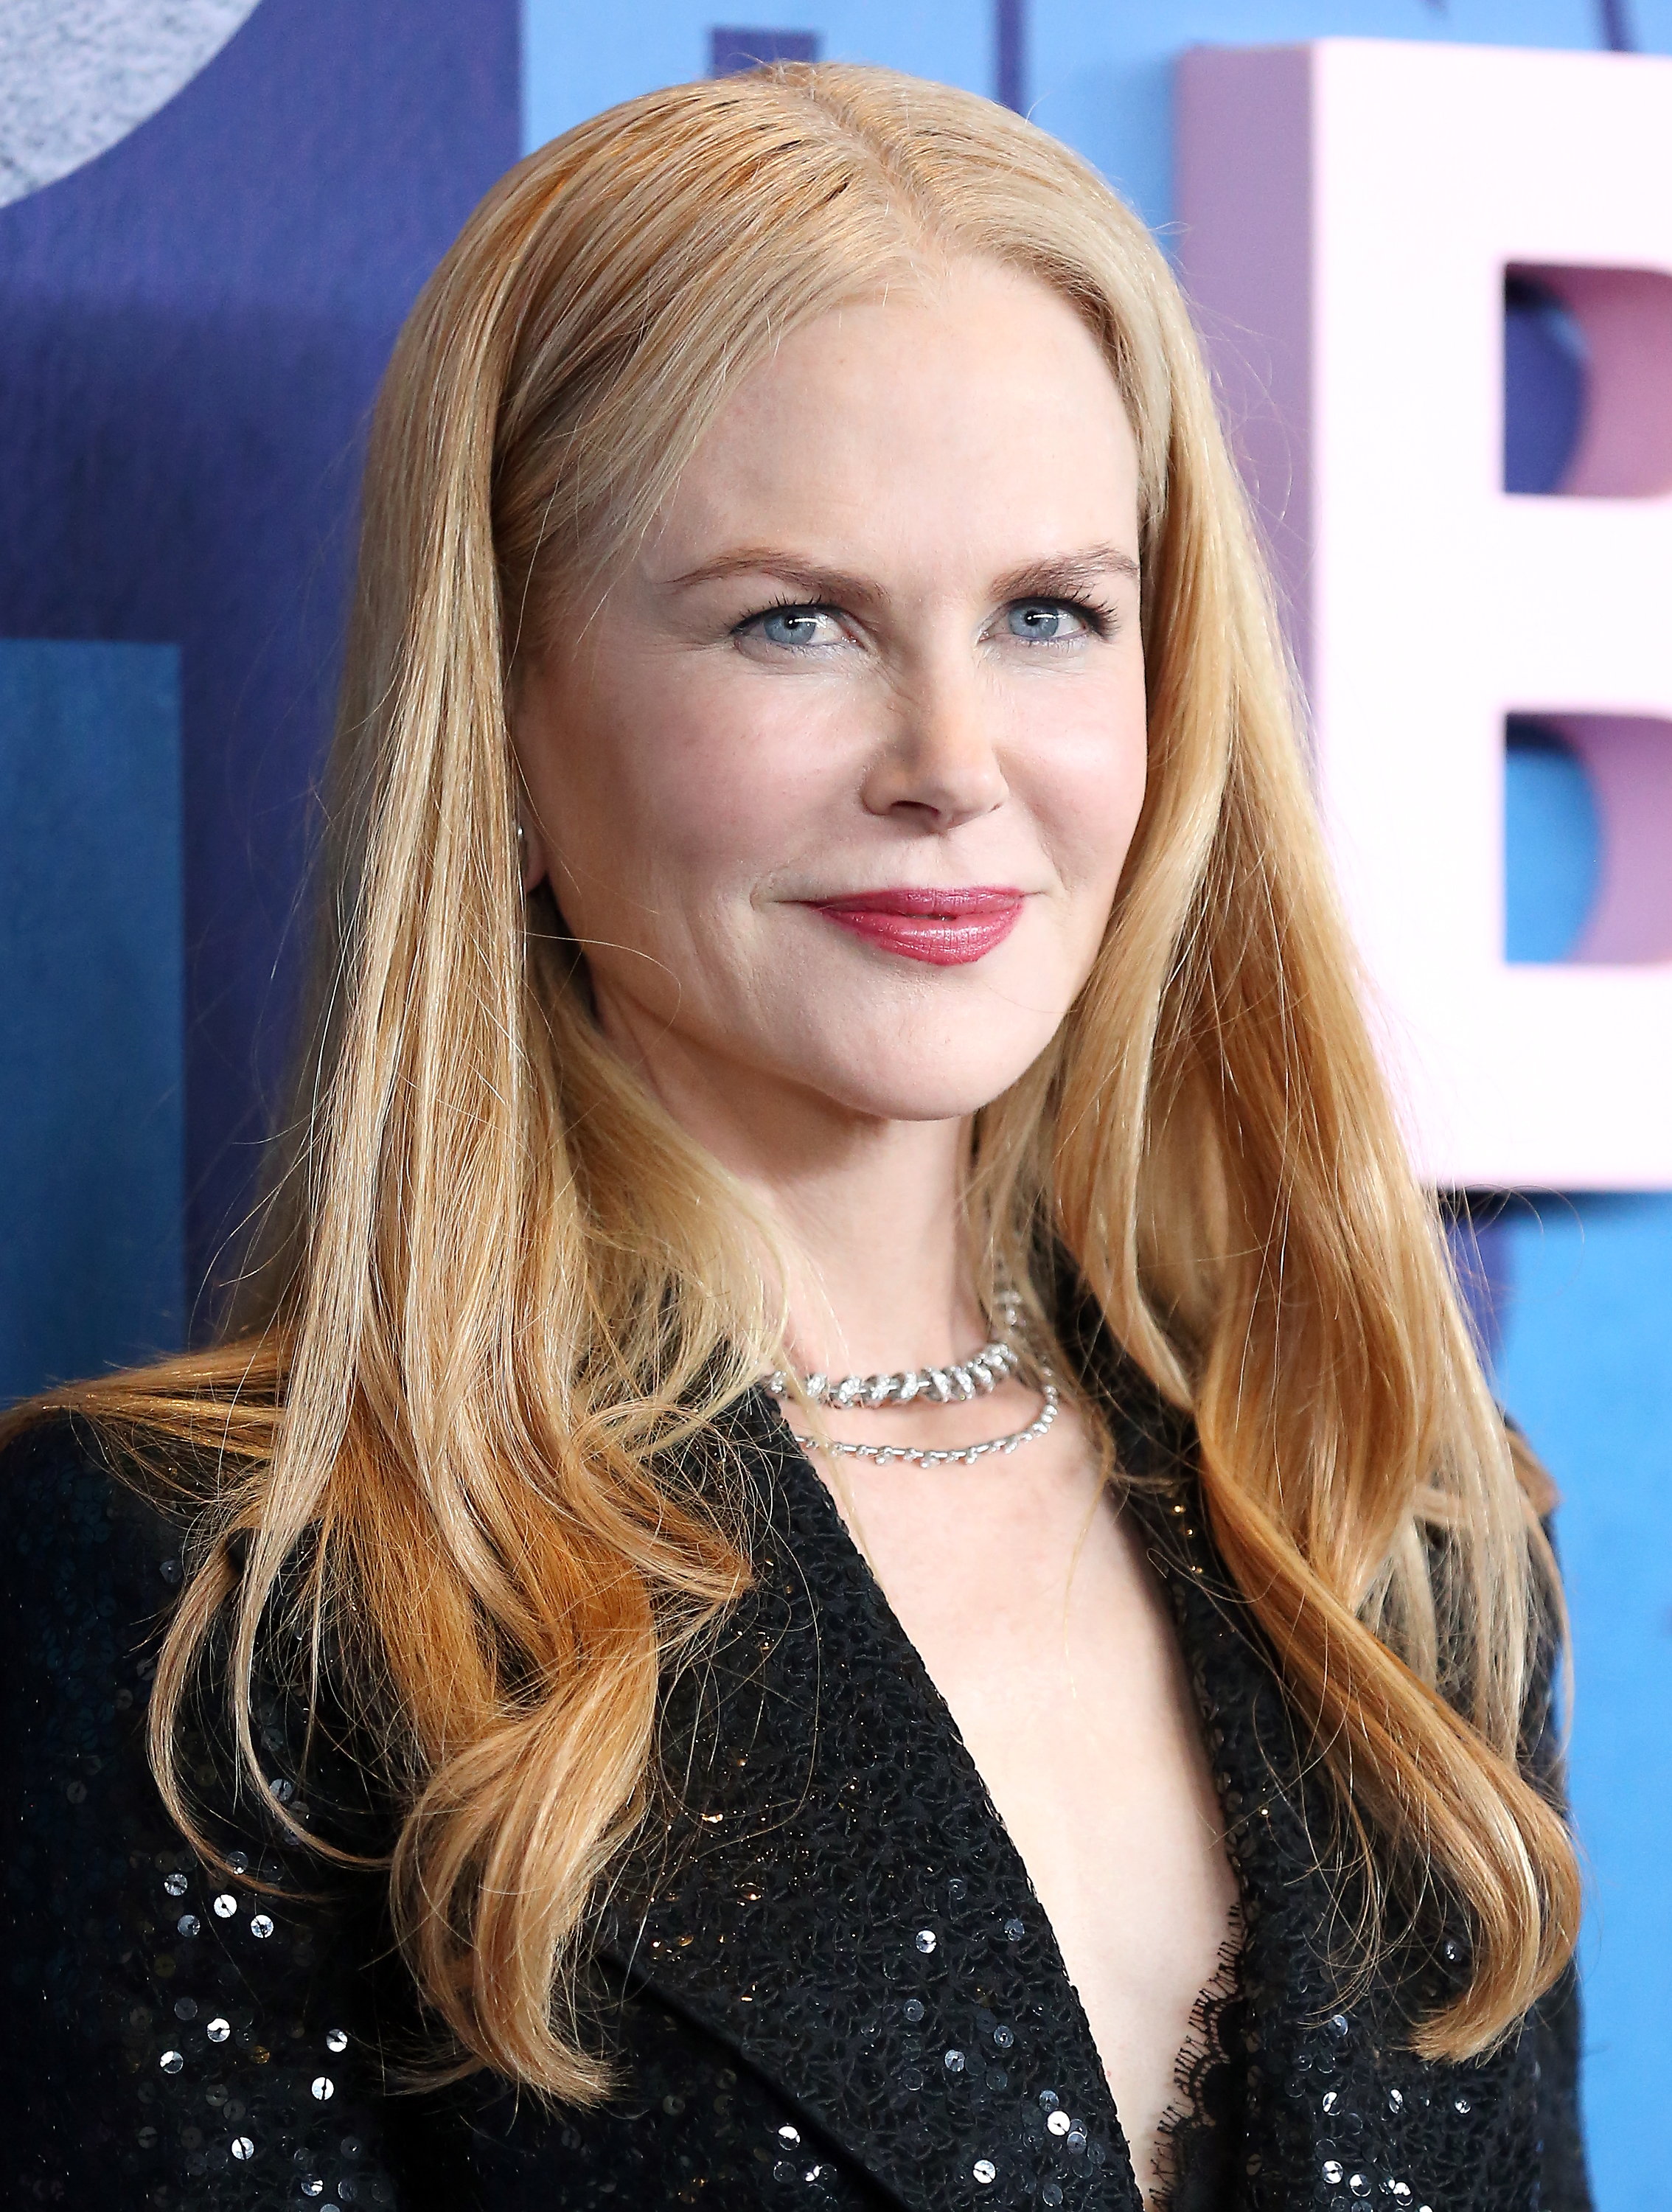 Nicole Kidman Revealed Some Big News About Her Daughters and <em>Big Little Lies</em>